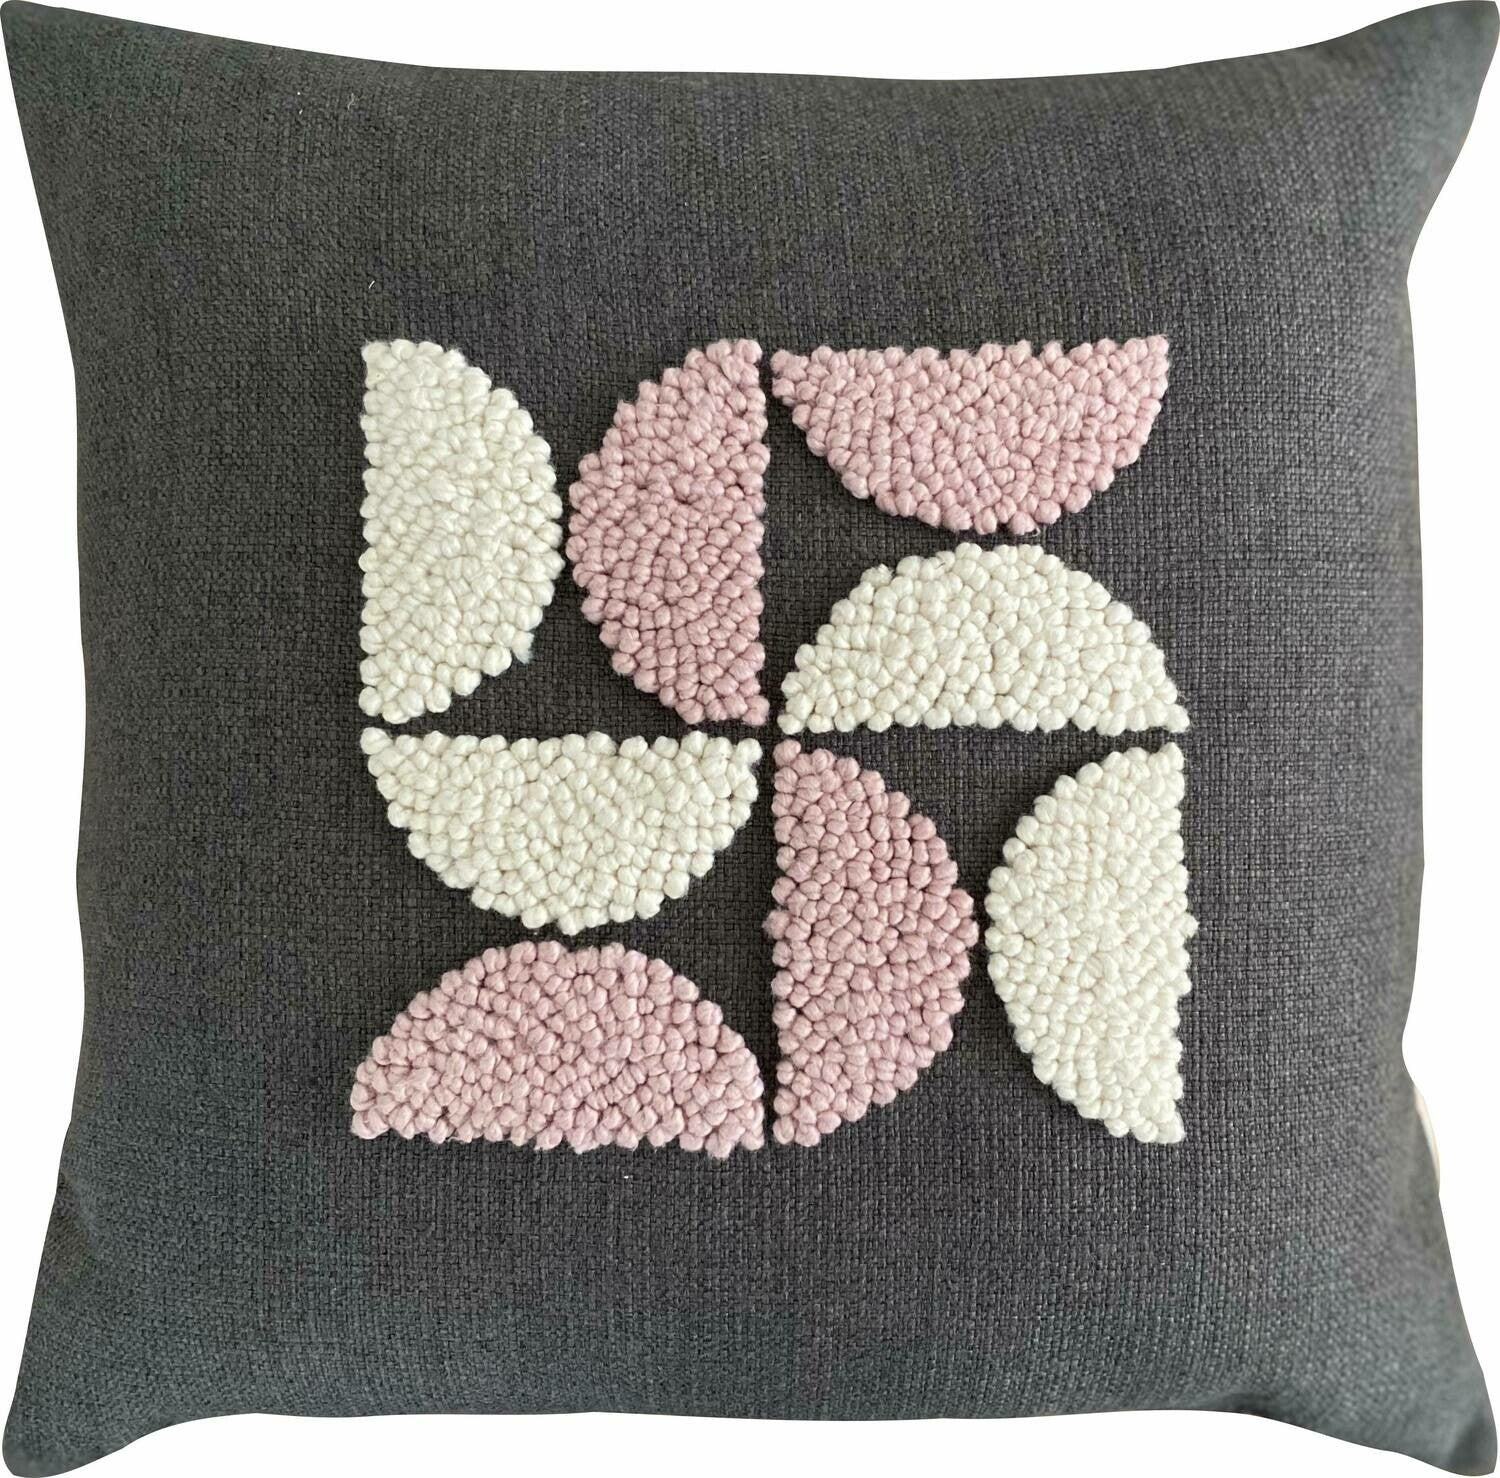 Punch Needle Cushion - AfriScandi Pattern 5